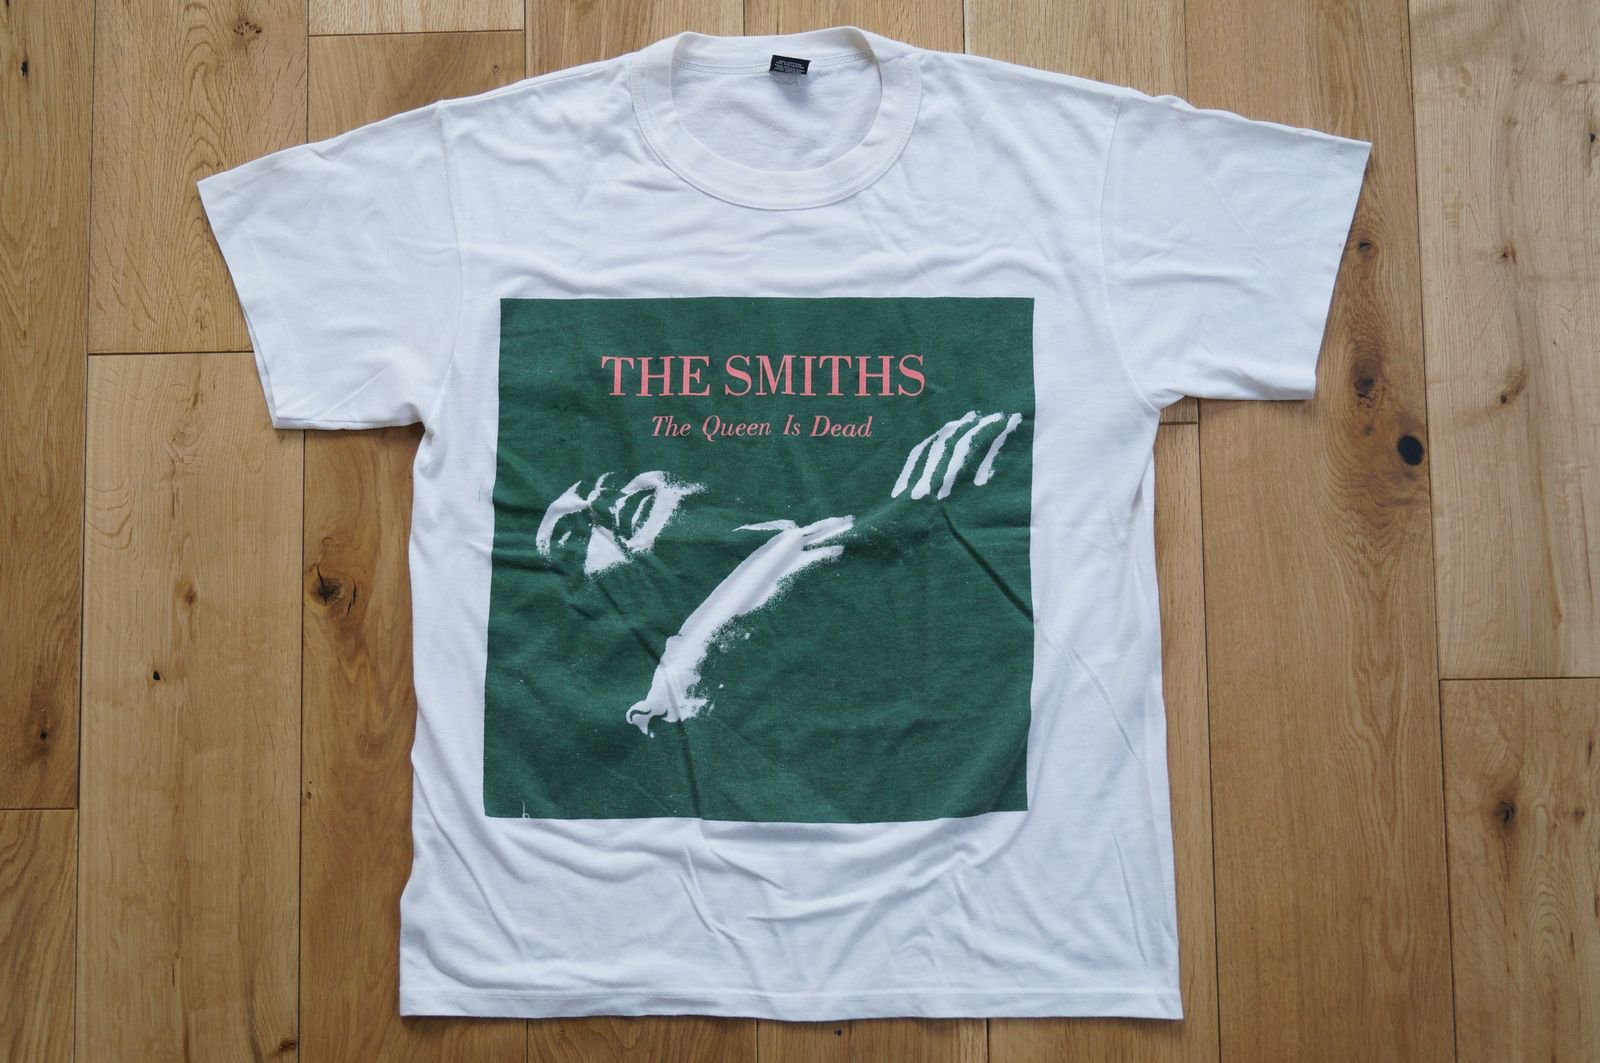 80年代 The Smiths Tee 「The Queen Is Dead」